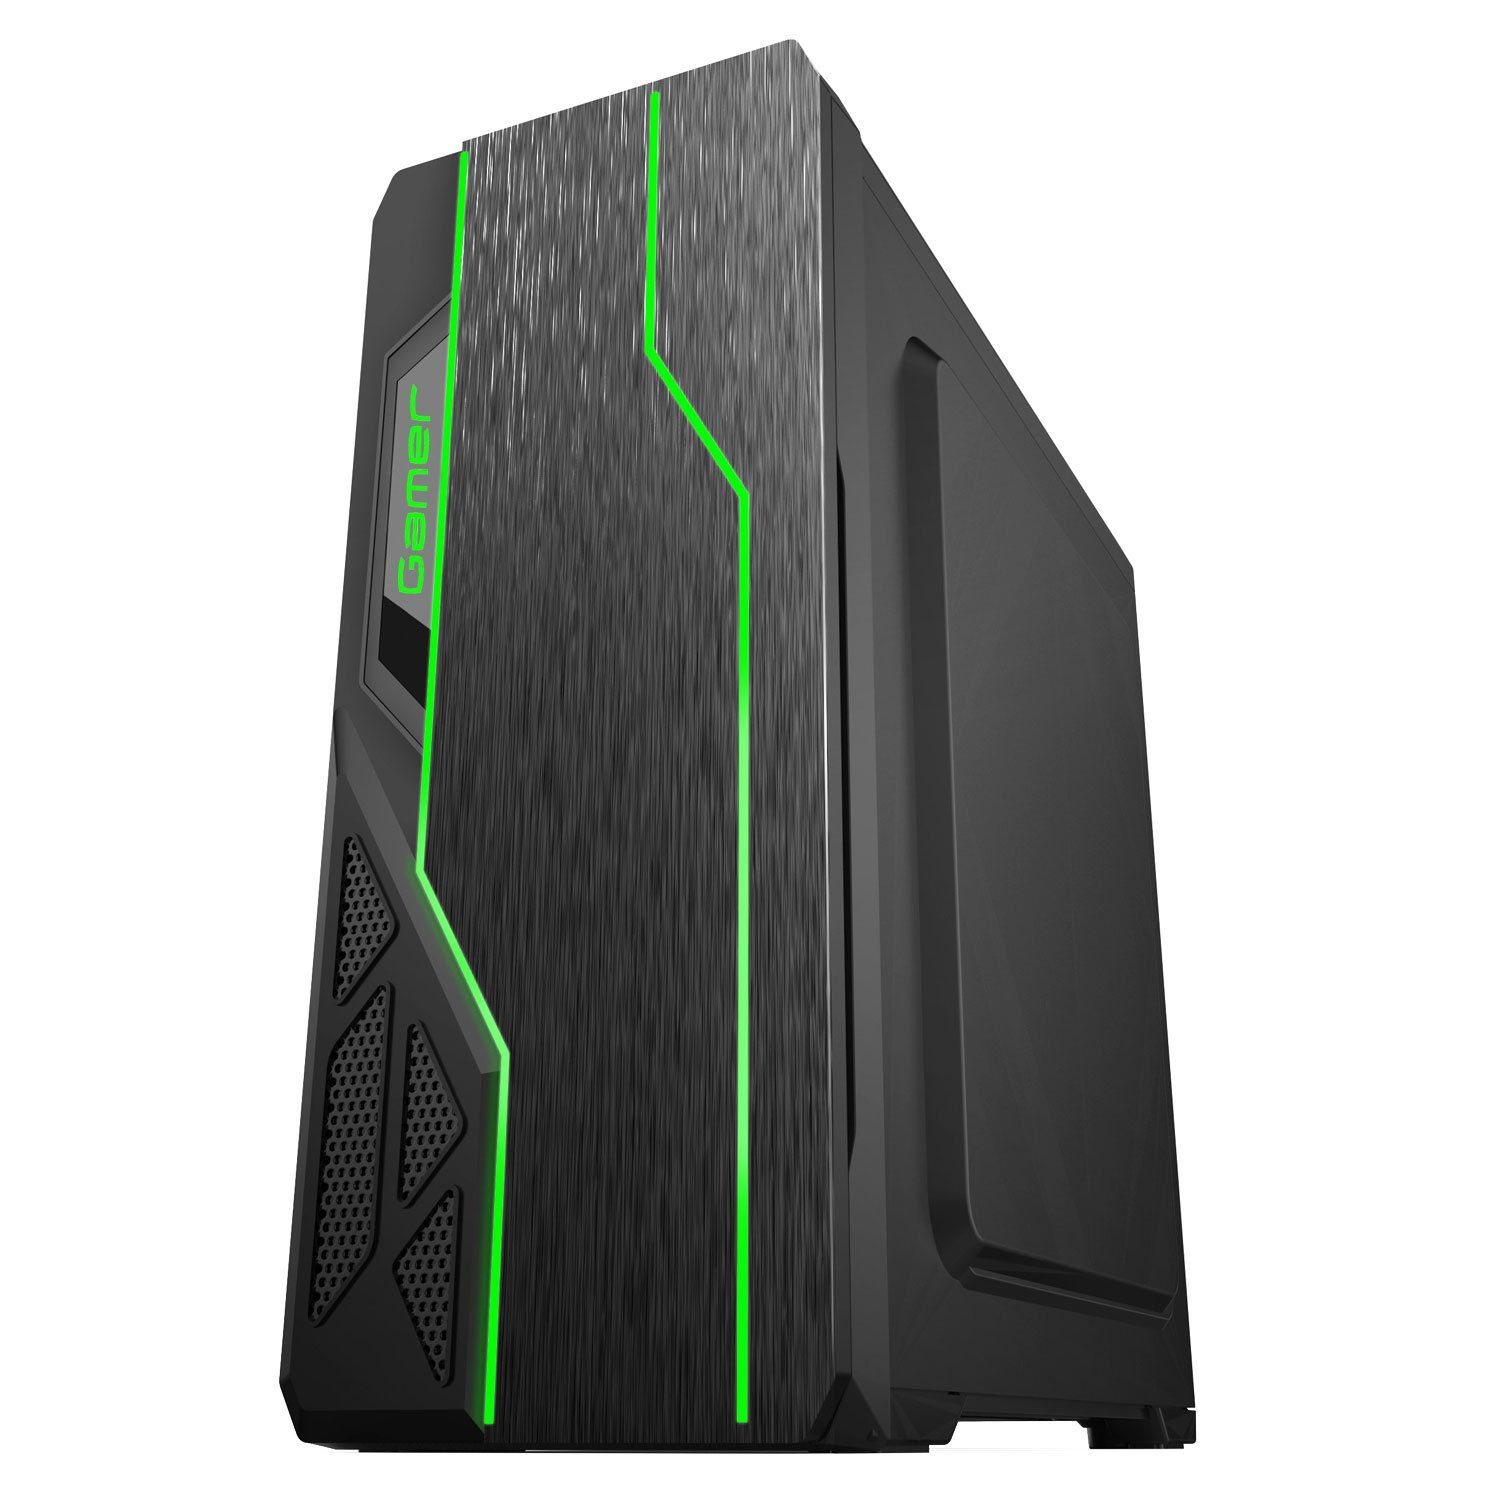 Gabinete Gamer Usb 3.0 Led Bluecase BG009 Preto